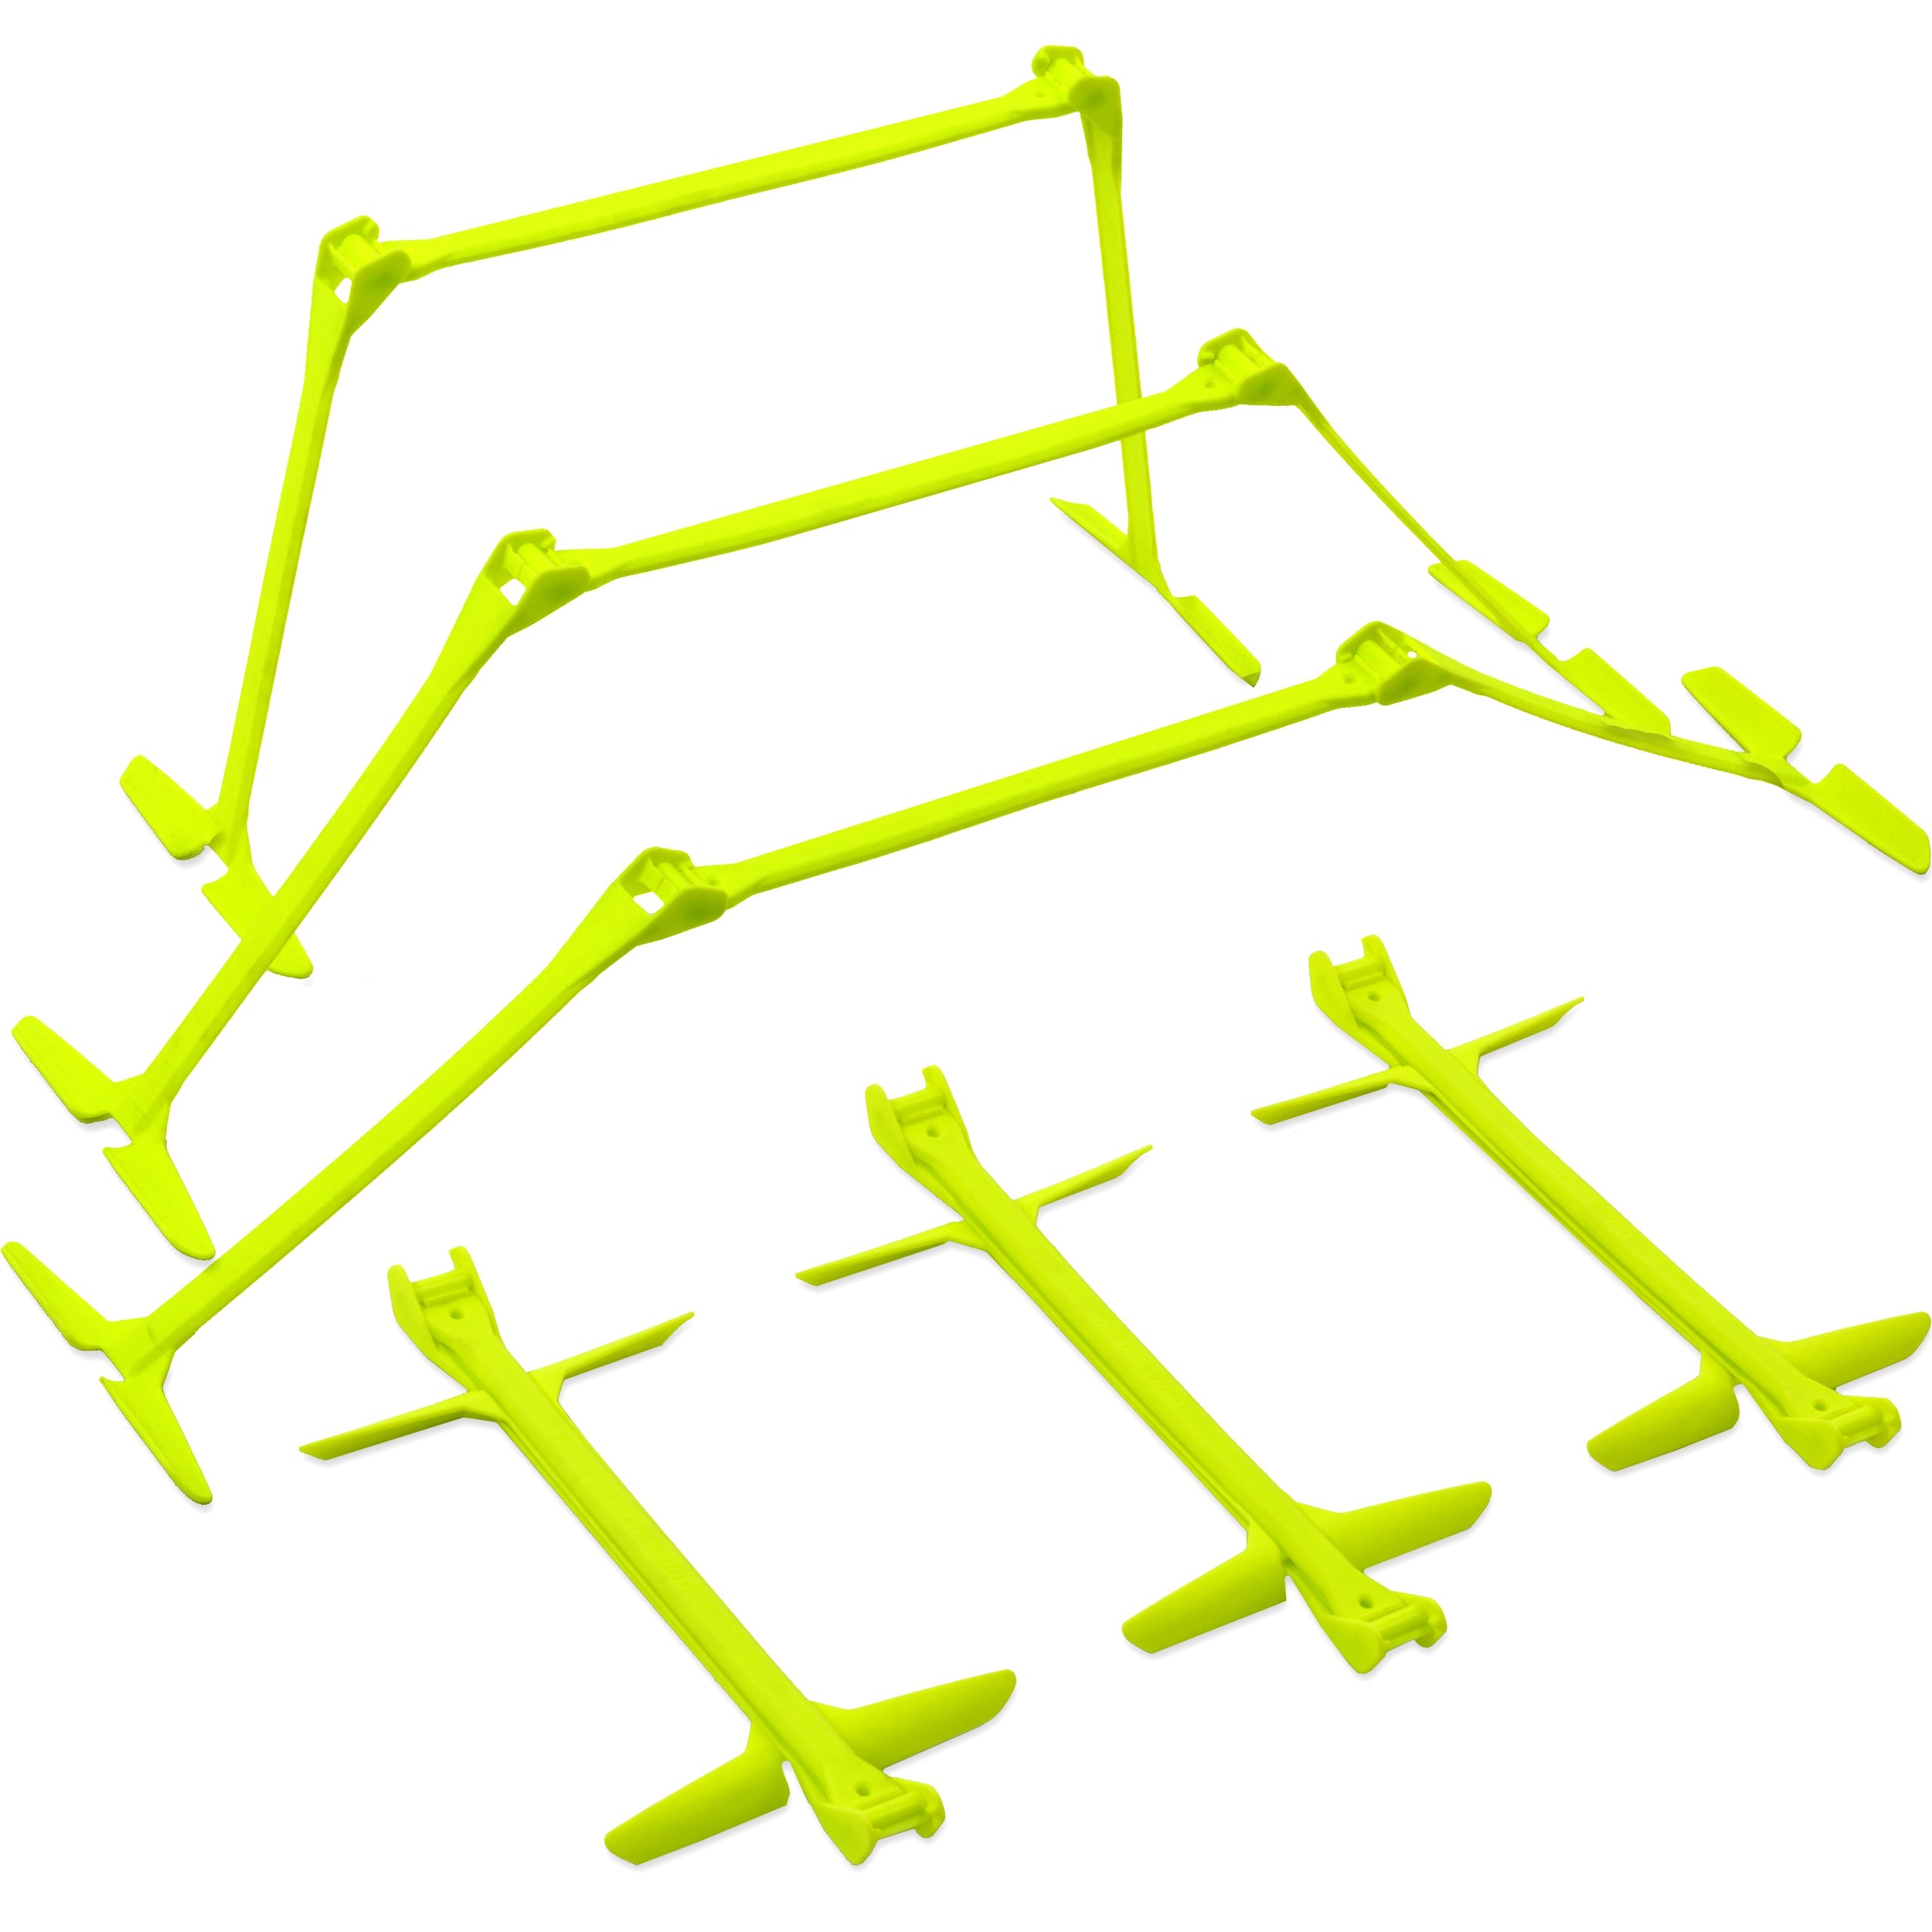 QuickPlay PRO Adjustable Height: 6'', 9'' + 12'' All-in-One Speed Hurdles (Set of 6) Speed Training Hurdles, Agility Hurdles and Plyometric Hurdles